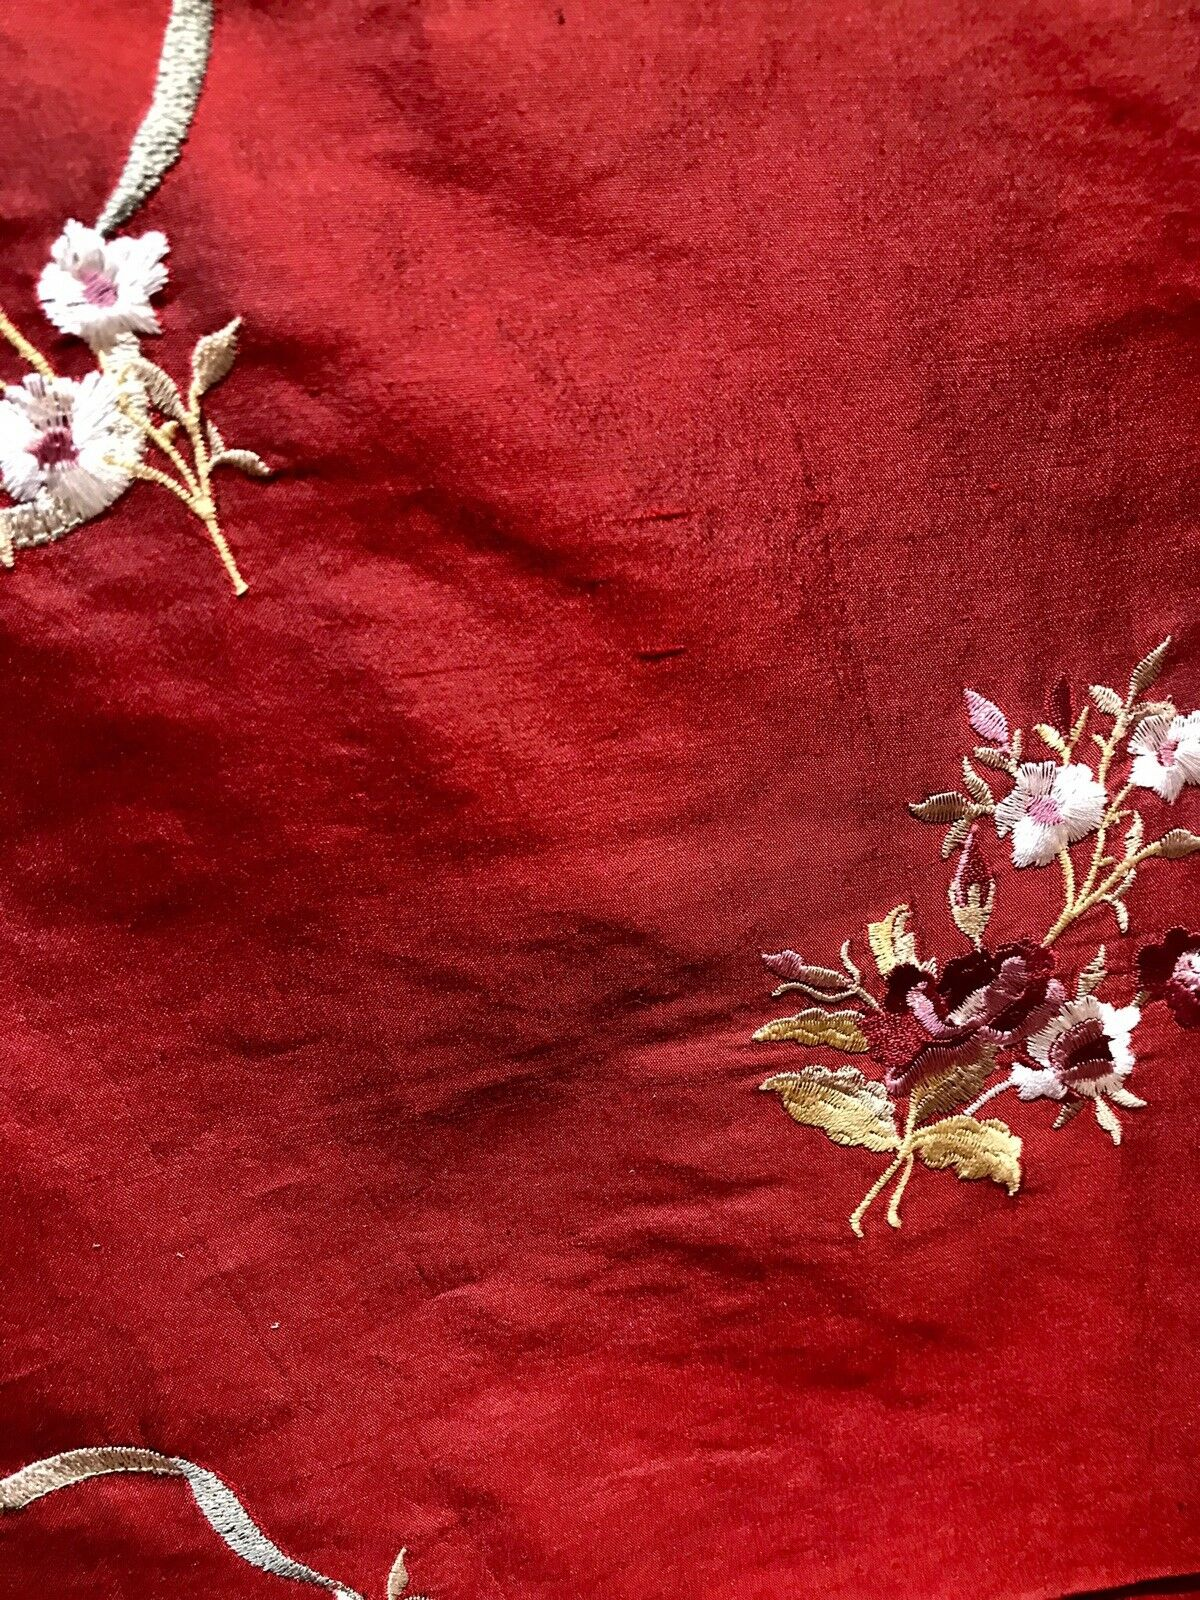 Designer 100% Silk Taffeta Dupioni Embroidery Fabric- Floral Ribbon Red